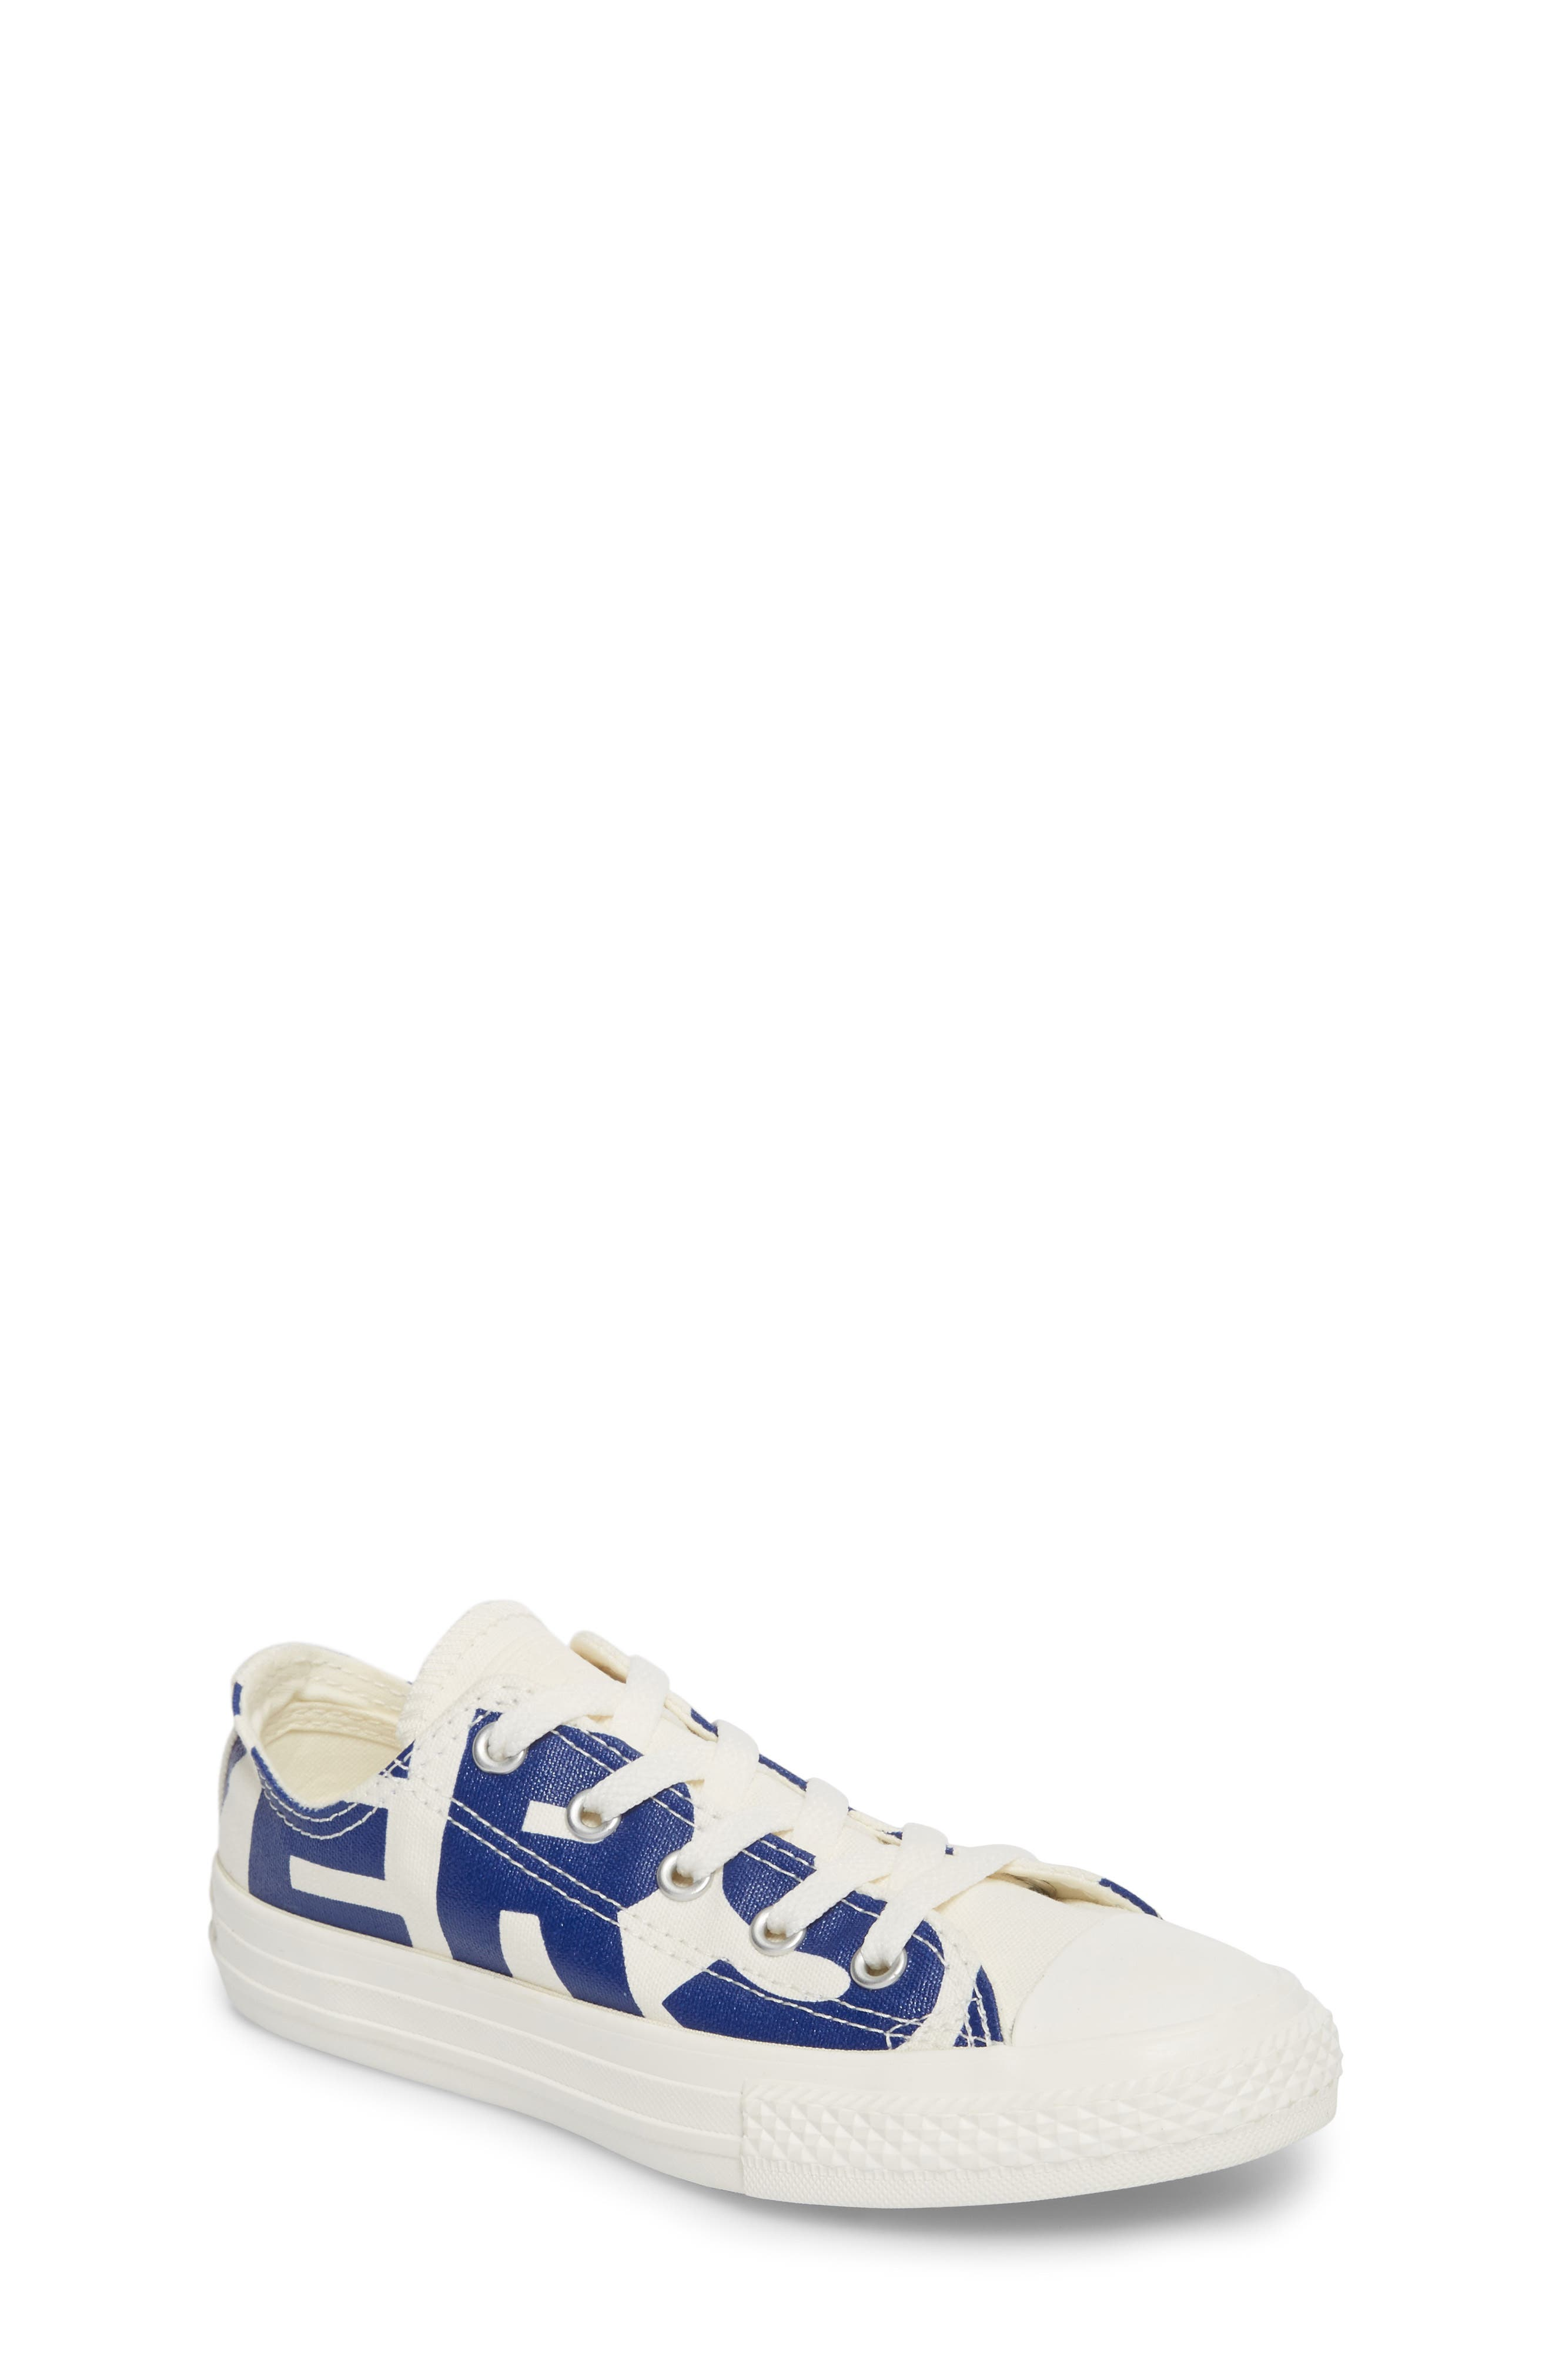 All Star<sup>®</sup> Wordmark OX Low Top Sneaker,                             Main thumbnail 1, color,                             400